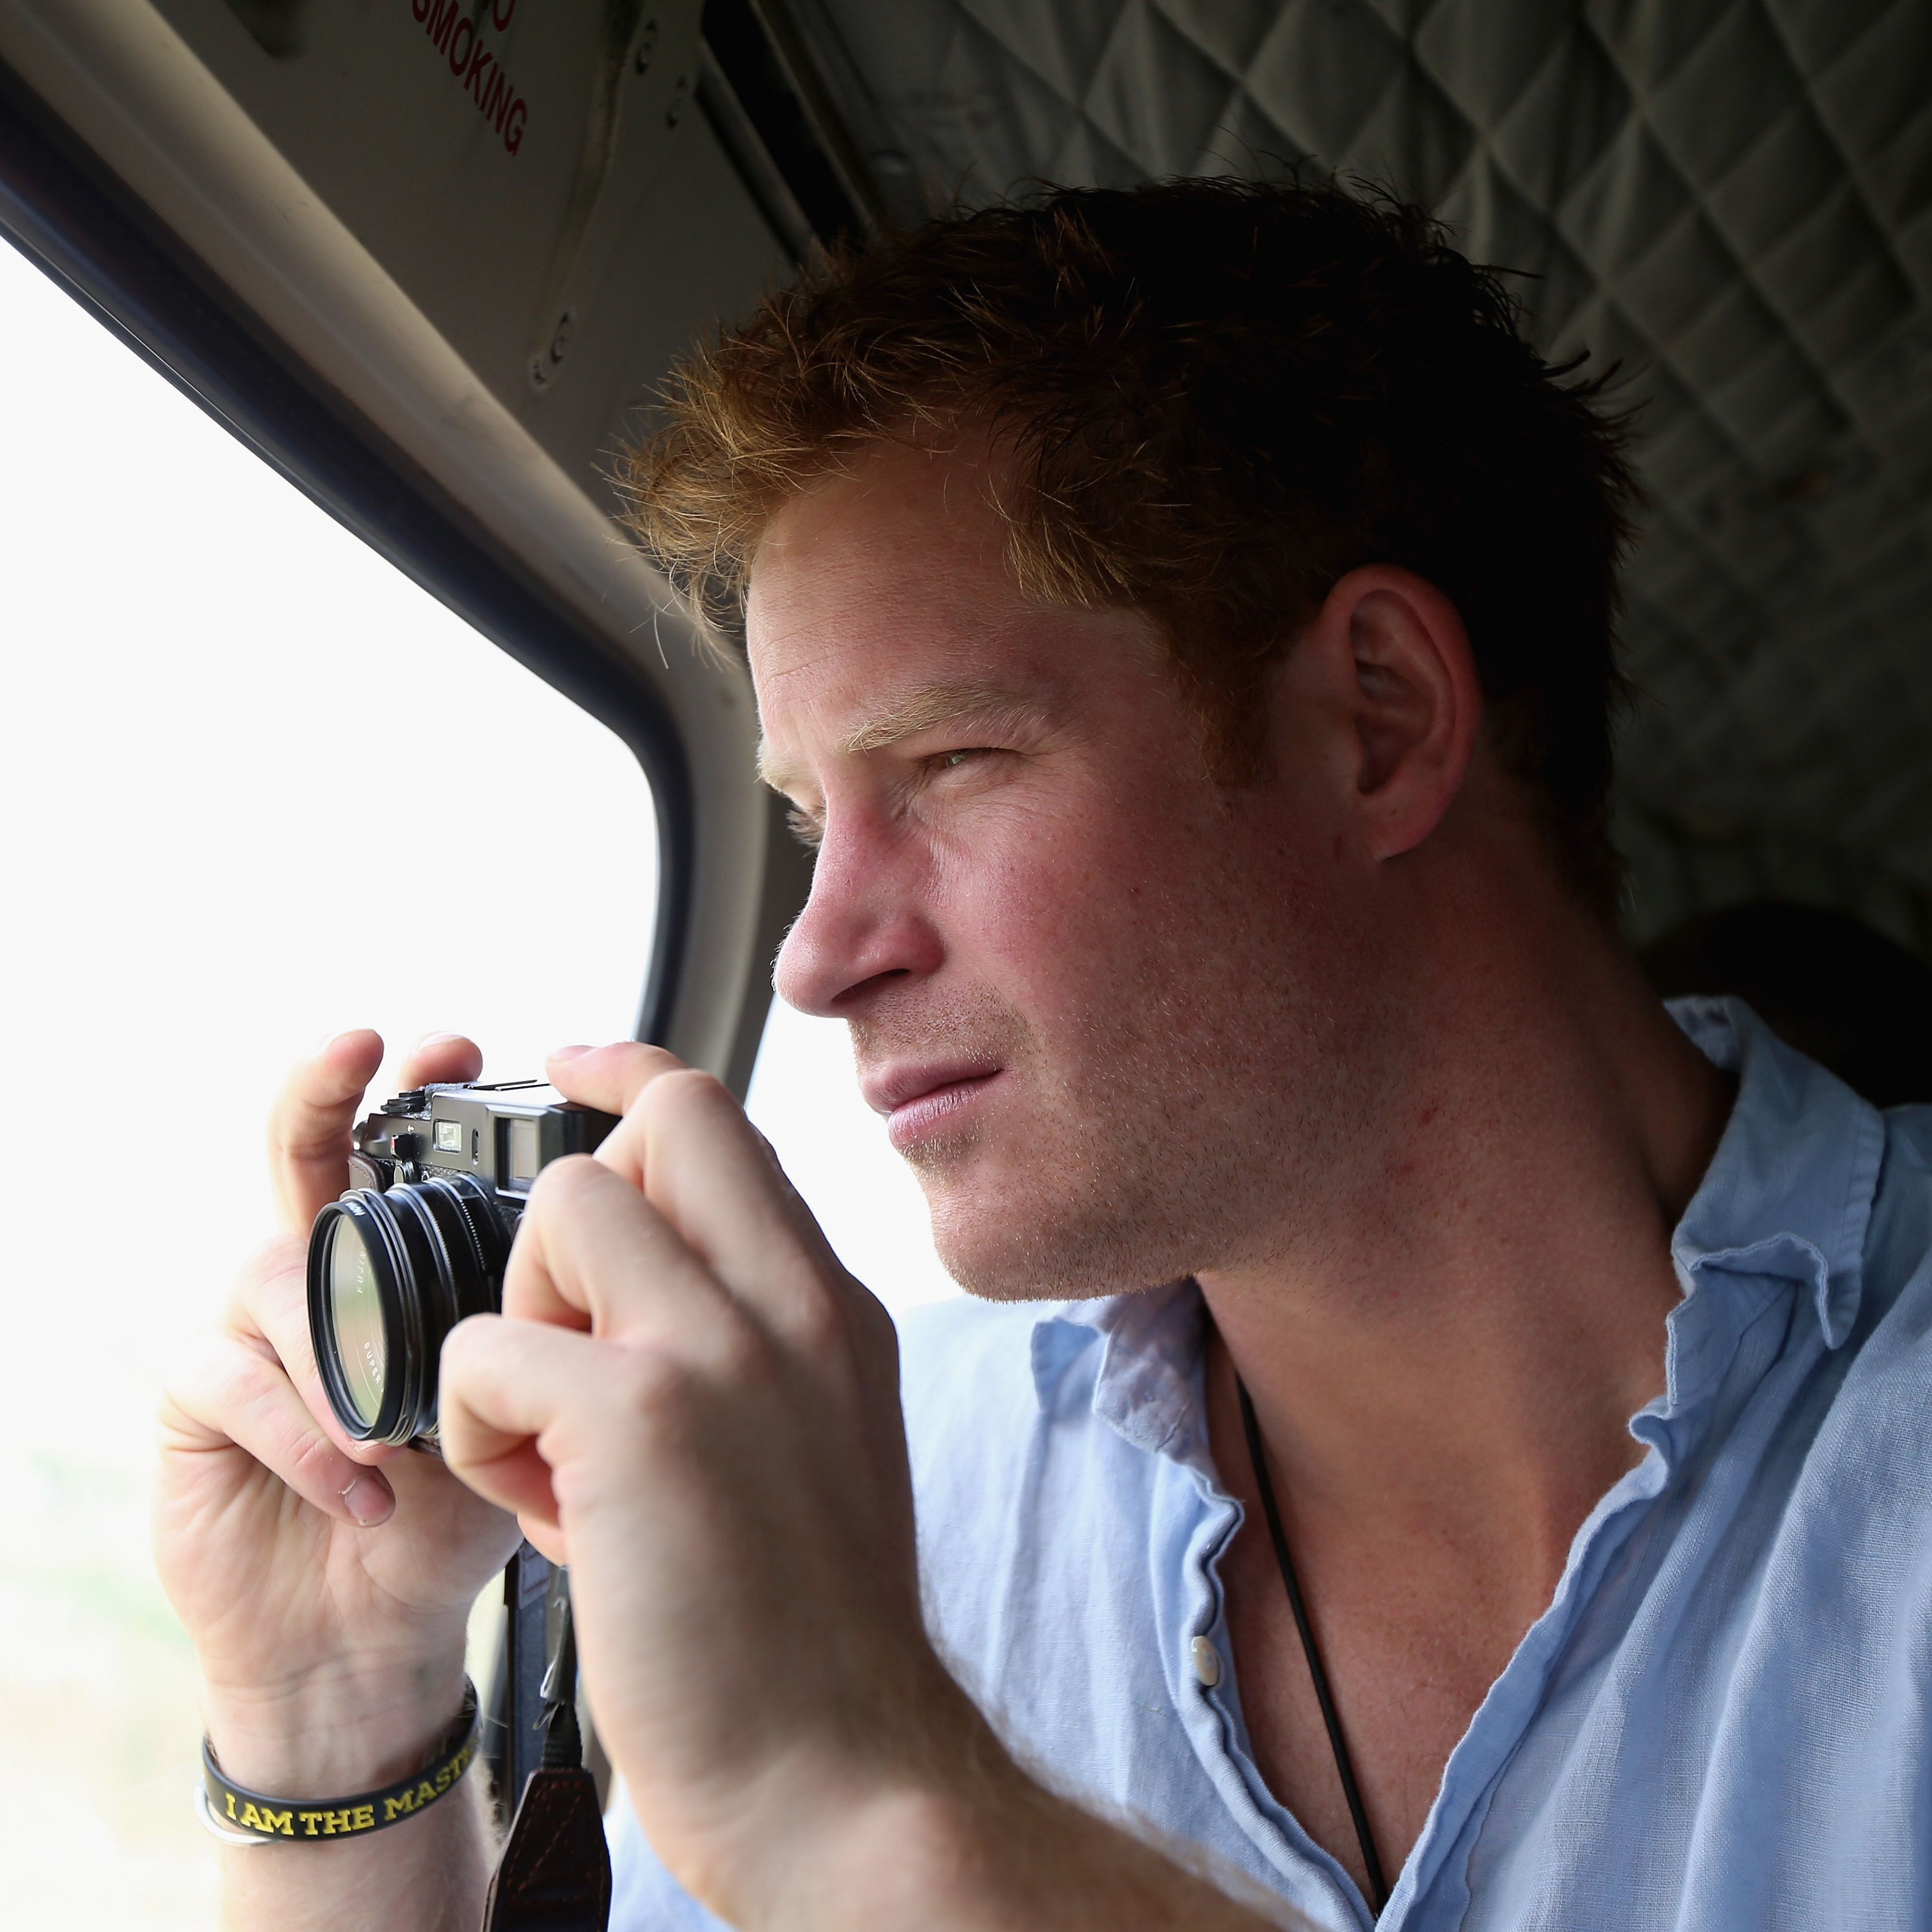 Prince Harry showcases his talent for photography on Instagram